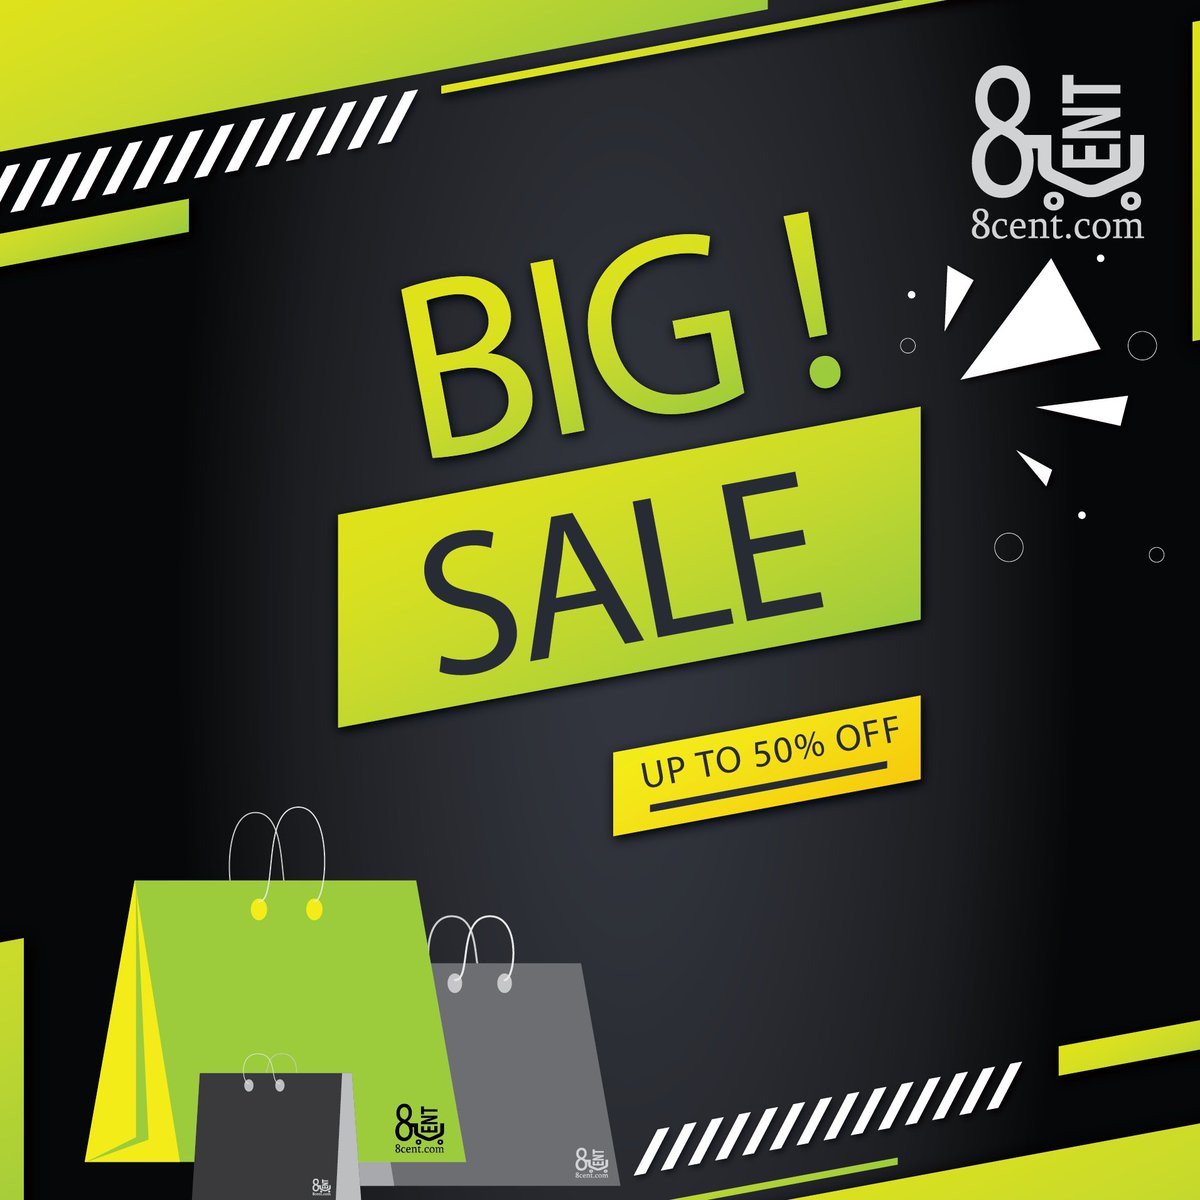 Big sale Big Sale Big Sale!!  Big sale in http://8cent.com Up to 50% OFF  Come and visit now!!  Discover more at https://www.8cent.com  #8cent #shopping #made #easy #big #sale #sales #bigsale